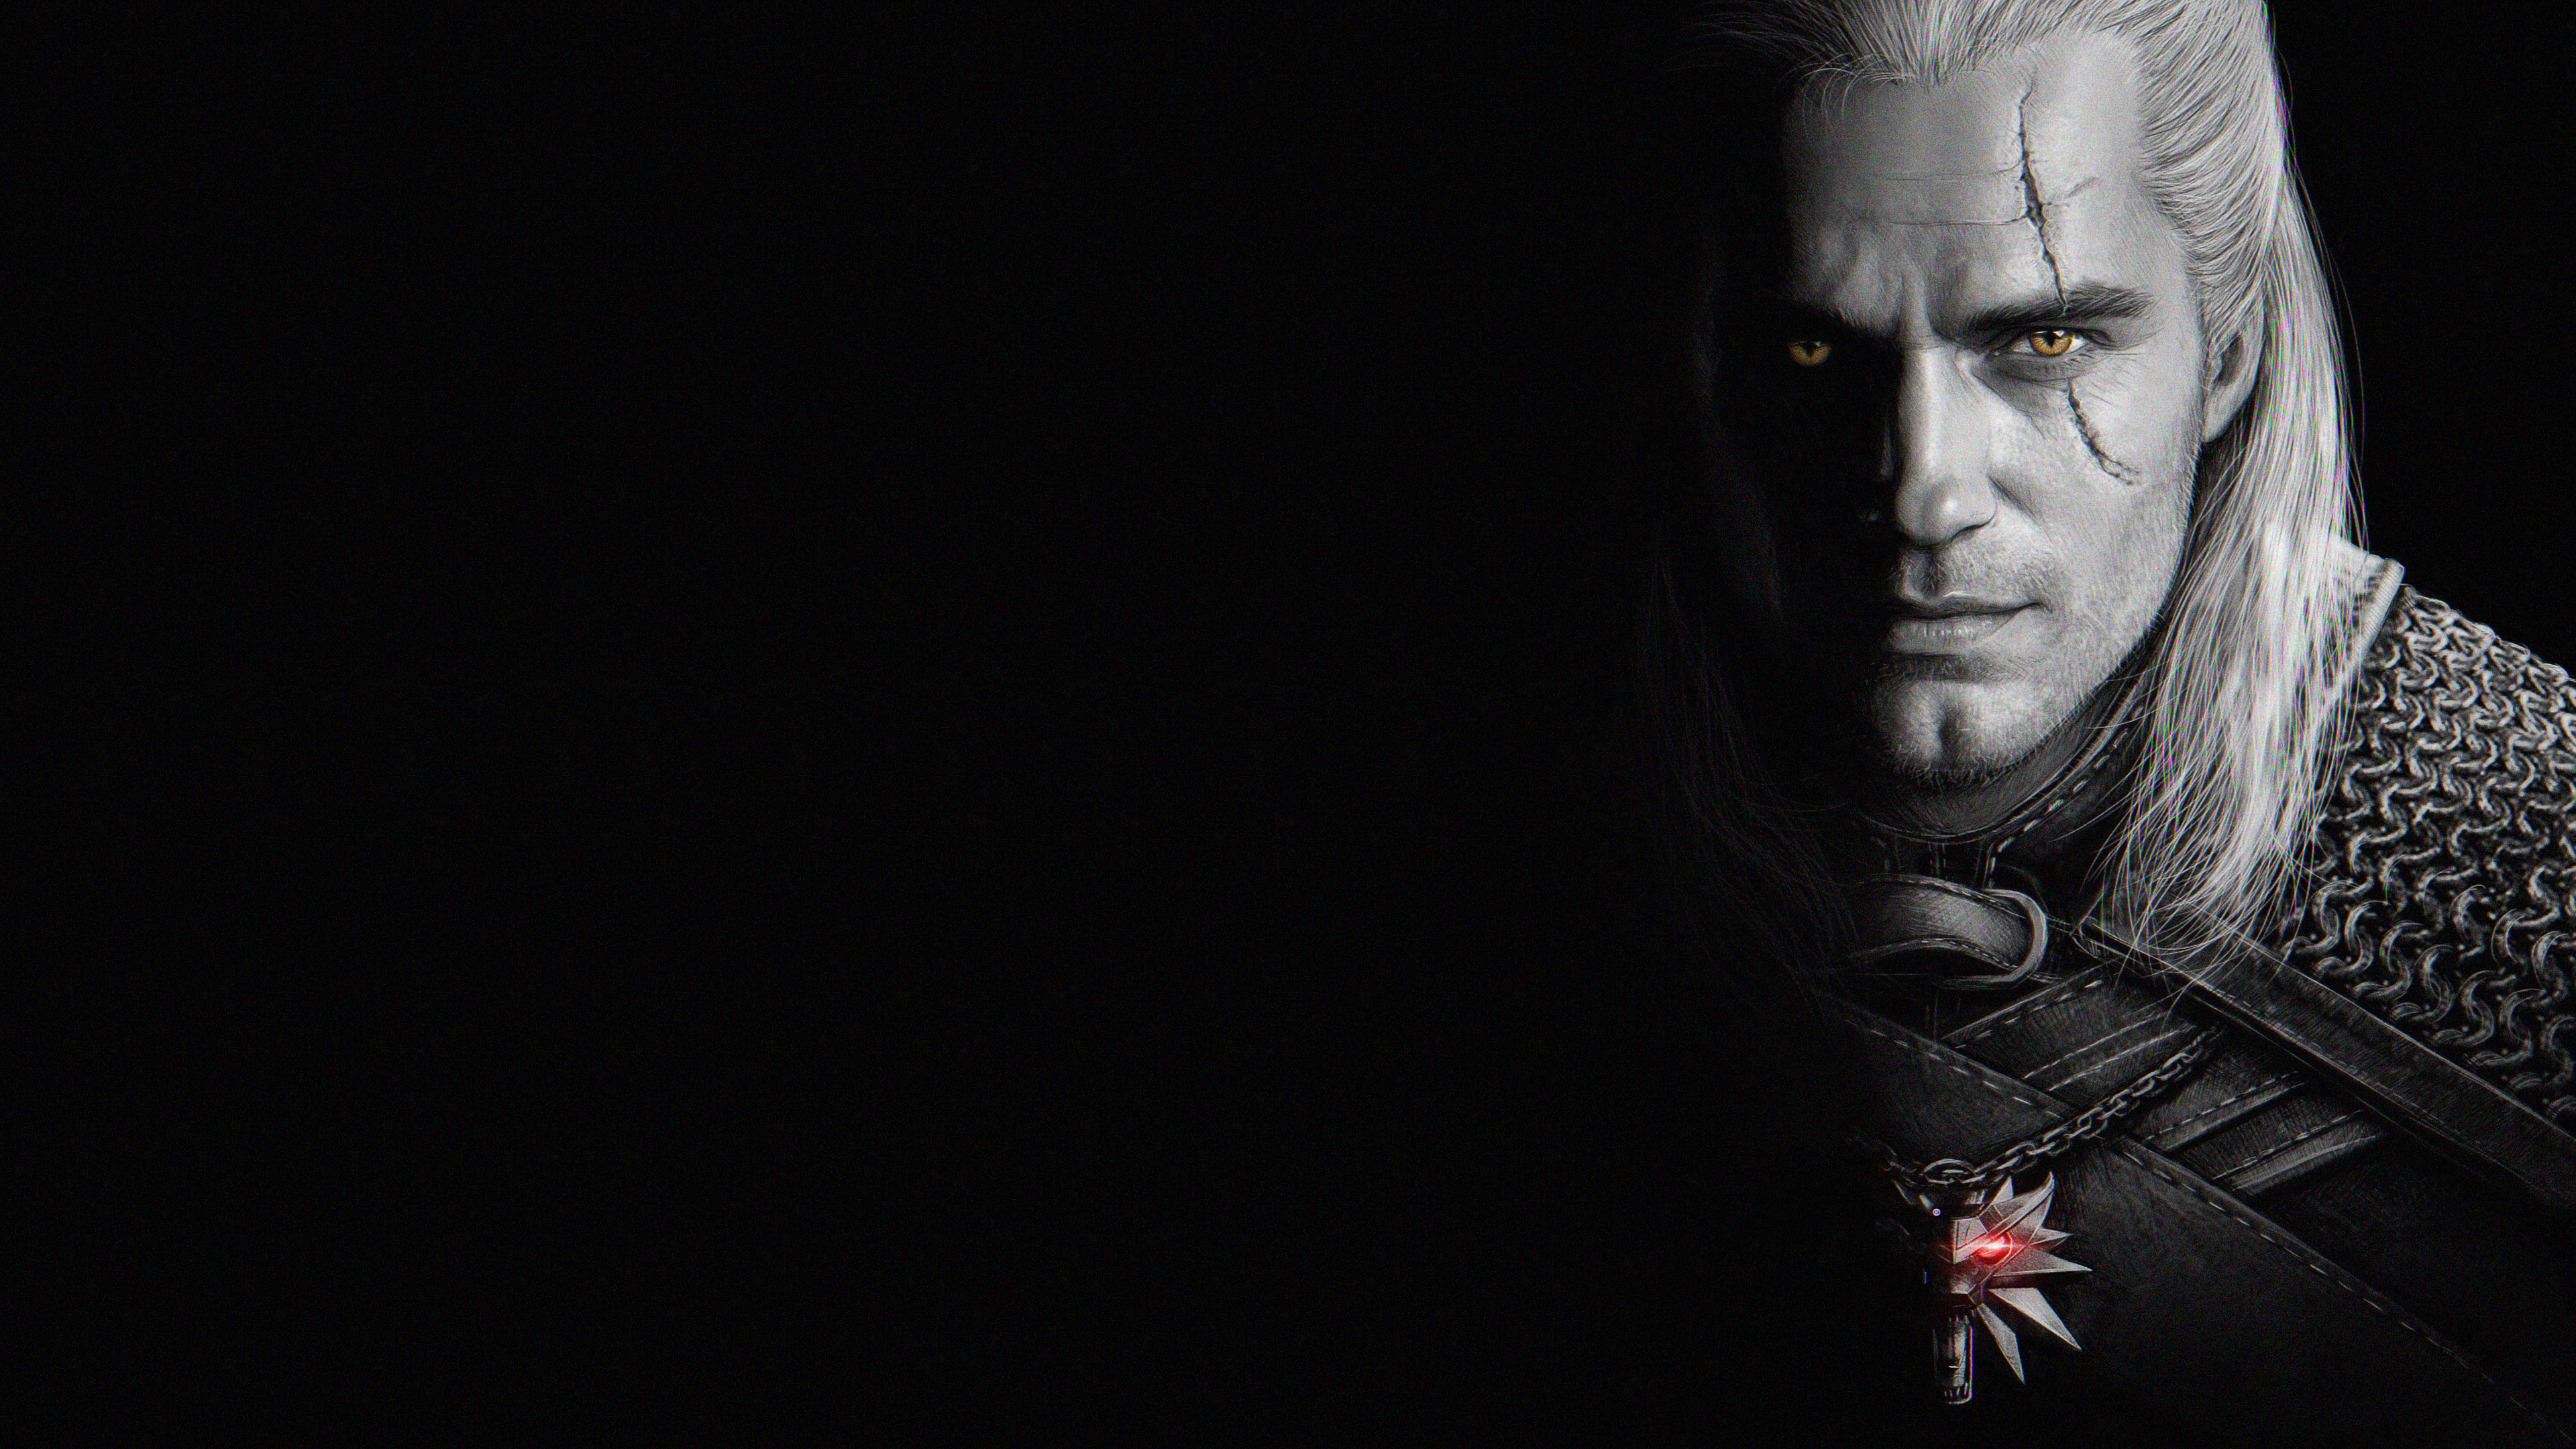 the witcher henry cavill black 1576972327 - The Witcher Henry Cavill Black White - Yennefer wallpaper witcher 4k, Yennefer In Witcher wallpaper hd 4k, Yennefer In Witcher wallpaper